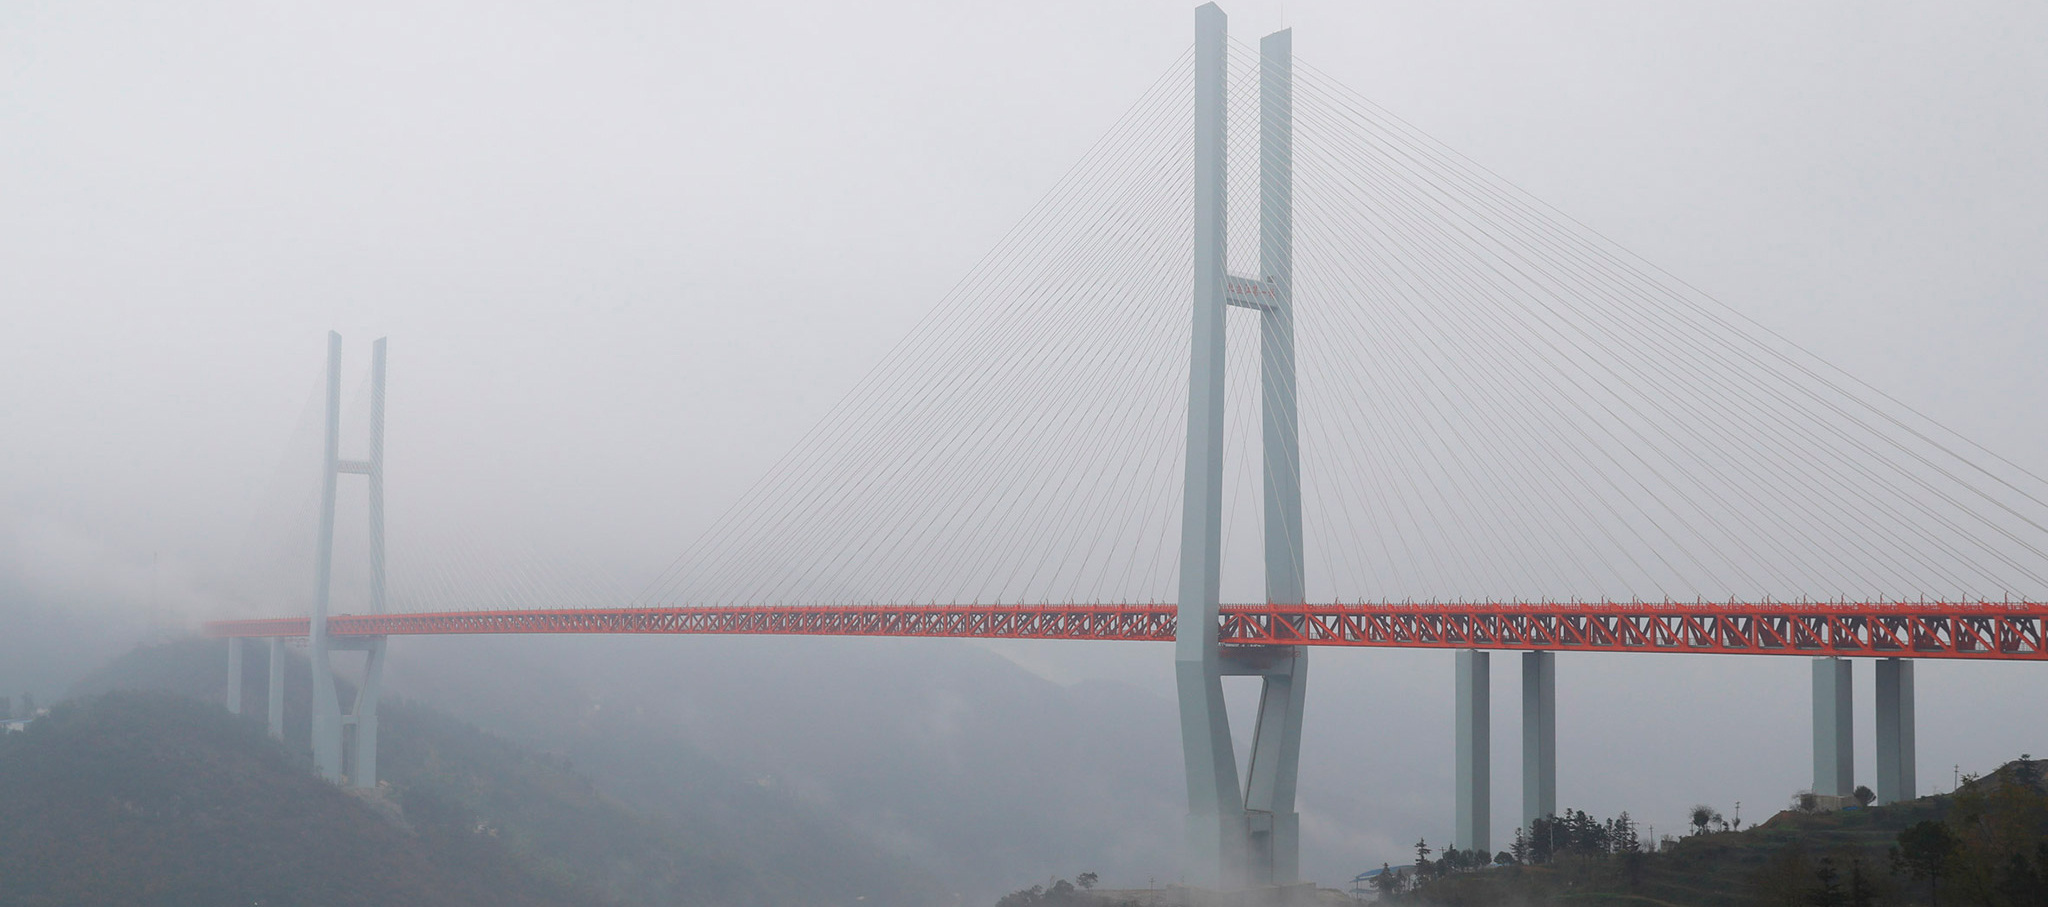 Beipanjiang Bridge. Image courtesy of ImagineChina